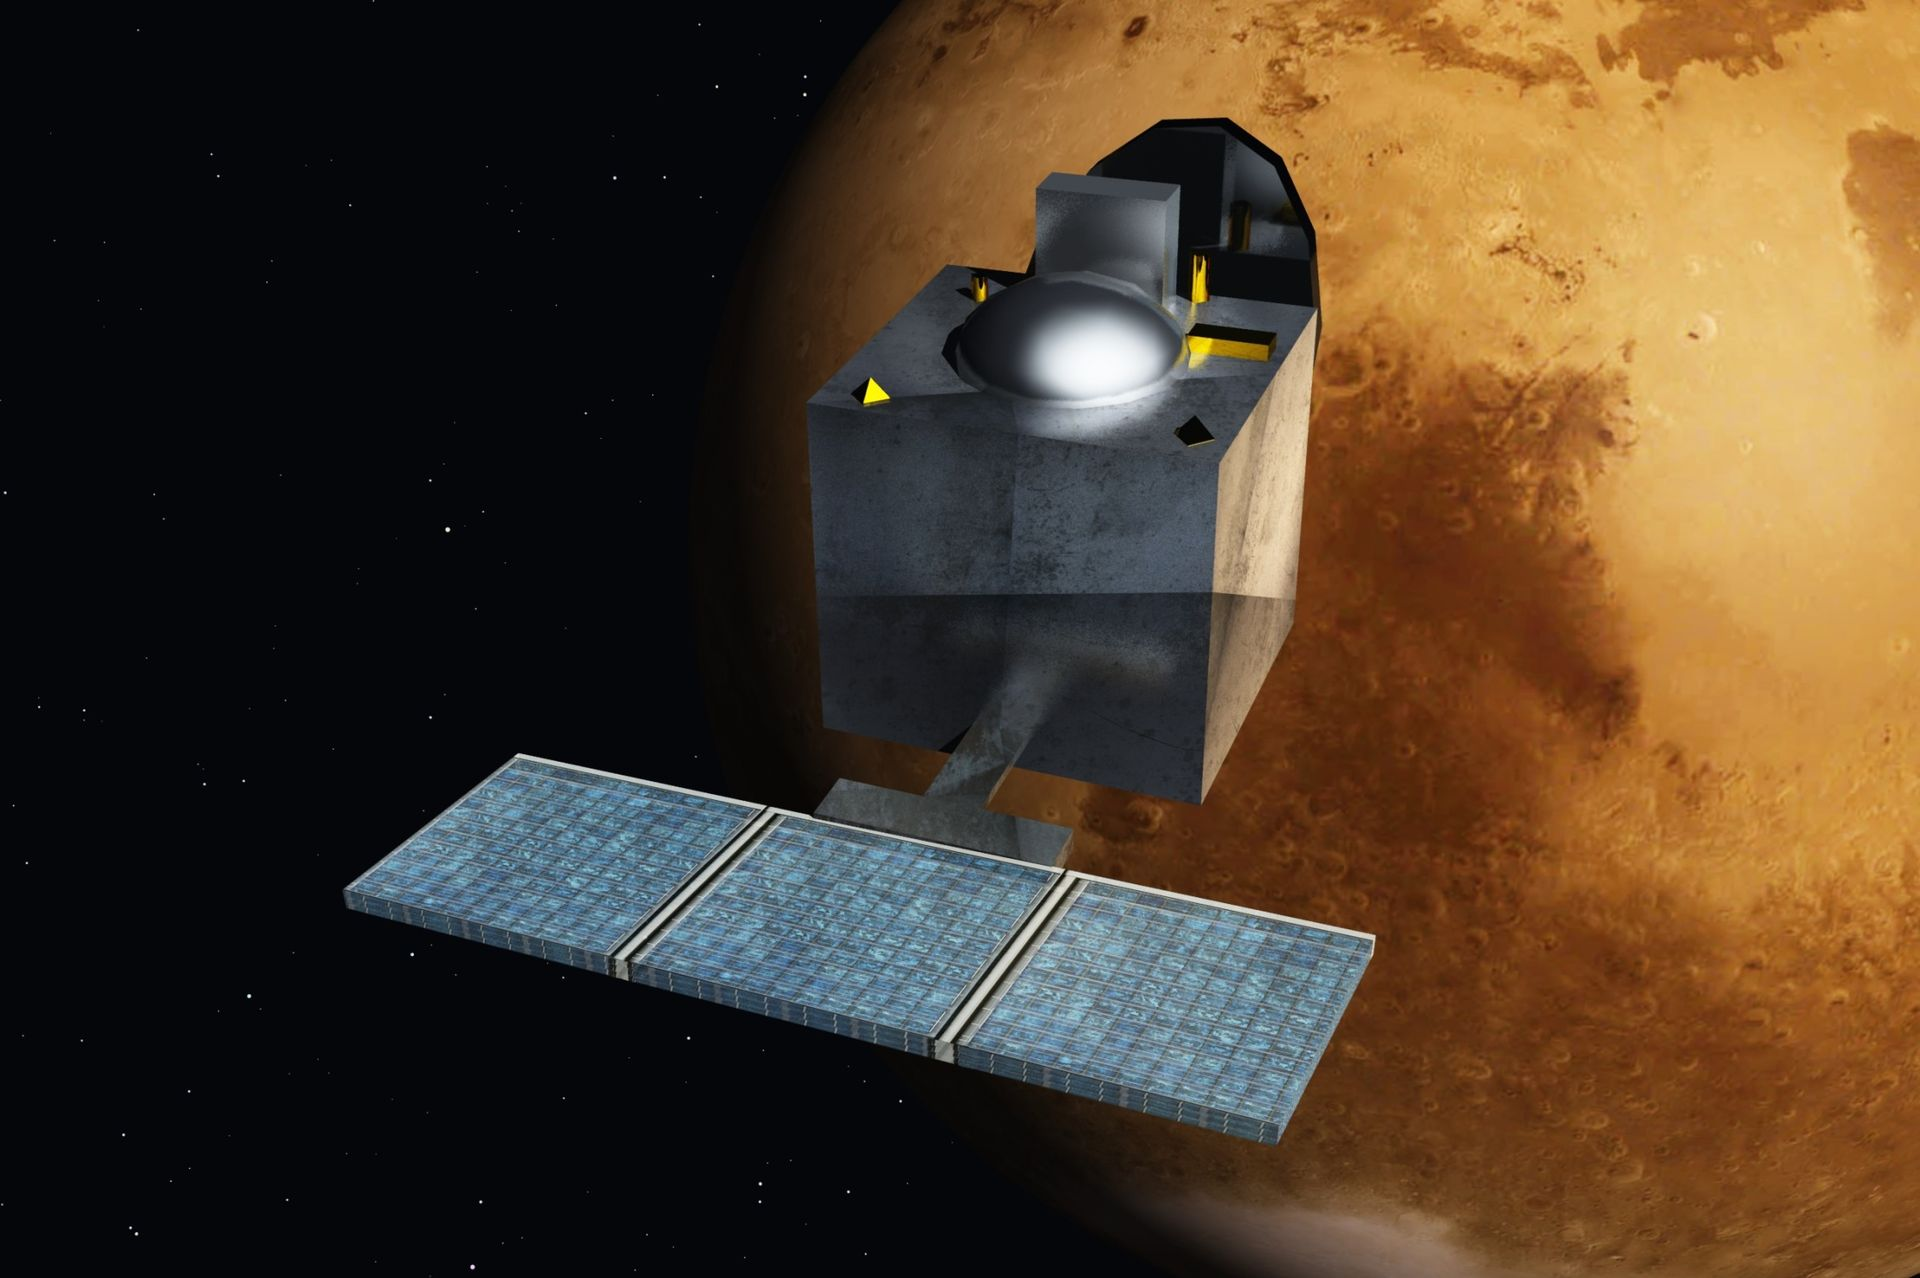 Artist's rendering of the Mars Orbiter Mission spacecraft at the Red Planet.